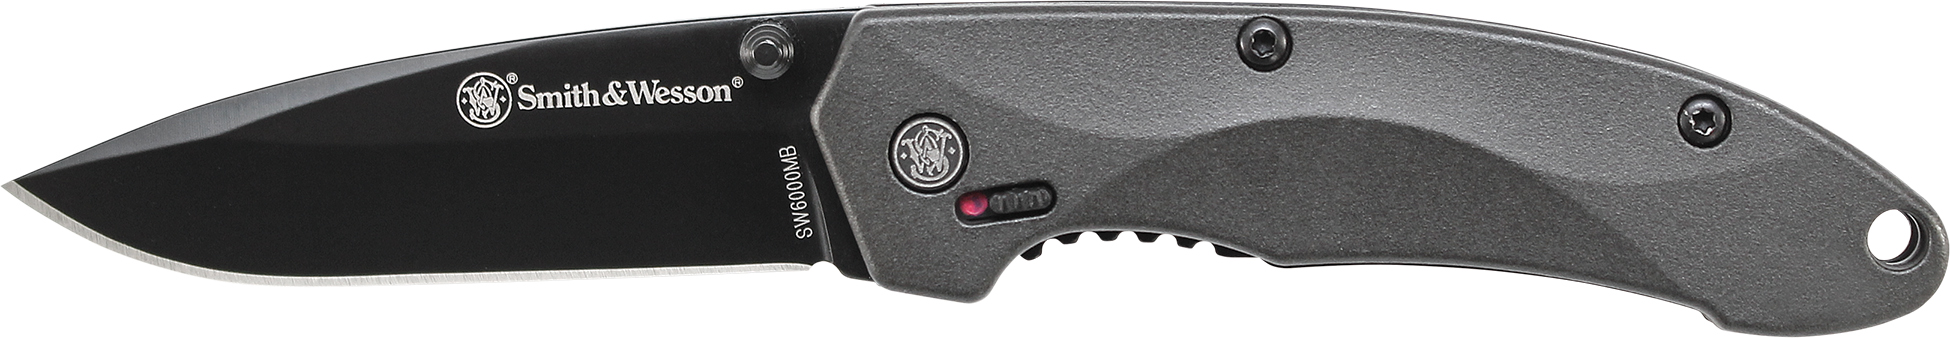 SW6000MB - Smith & Wesson M.A.G.I.C. Mini Assist w/Liner Lock, Thumb Studs, Finger Actuator, 4034 Stainless Steel